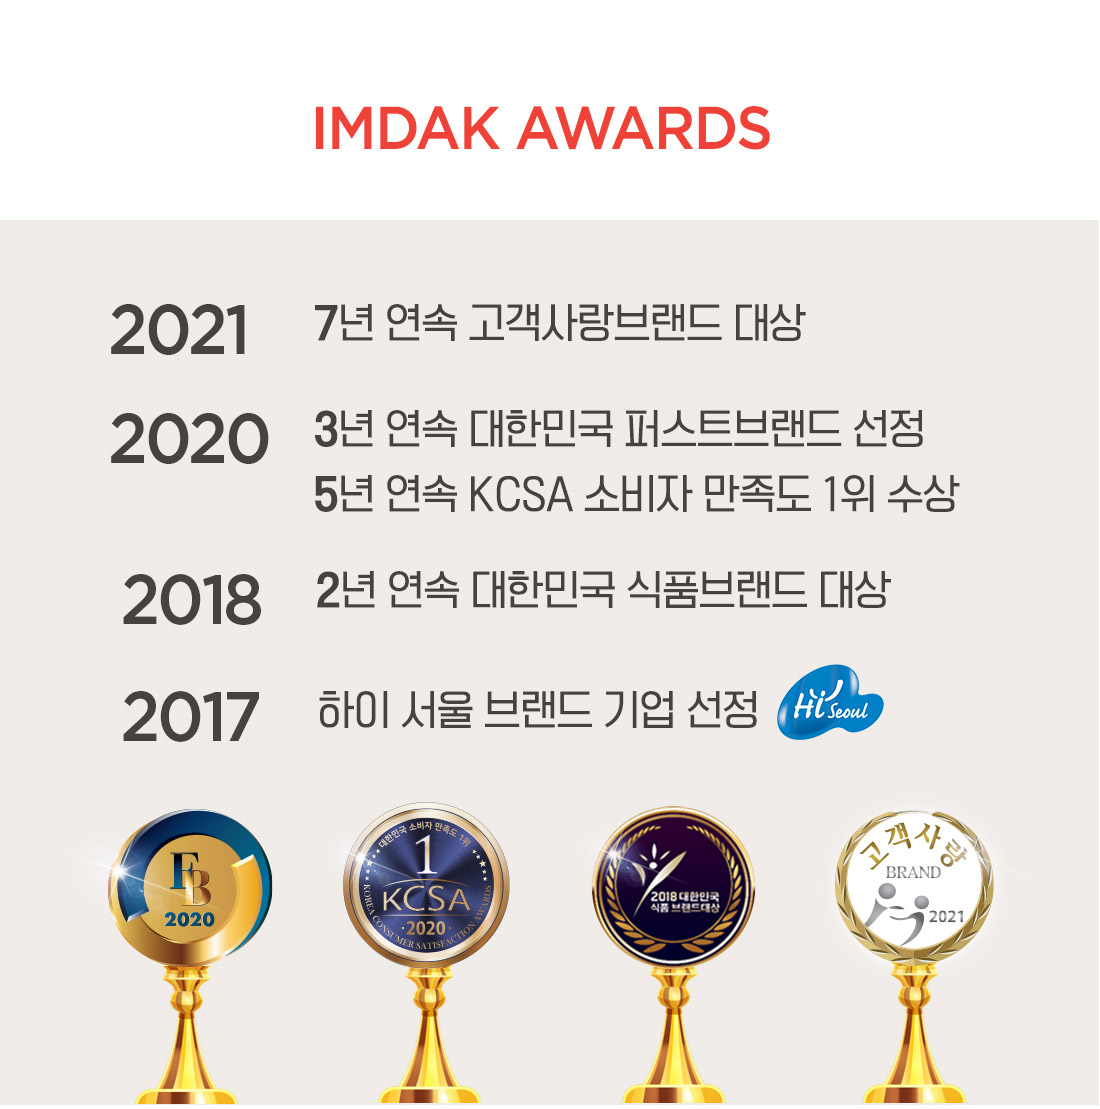 IMDAK AWARDS